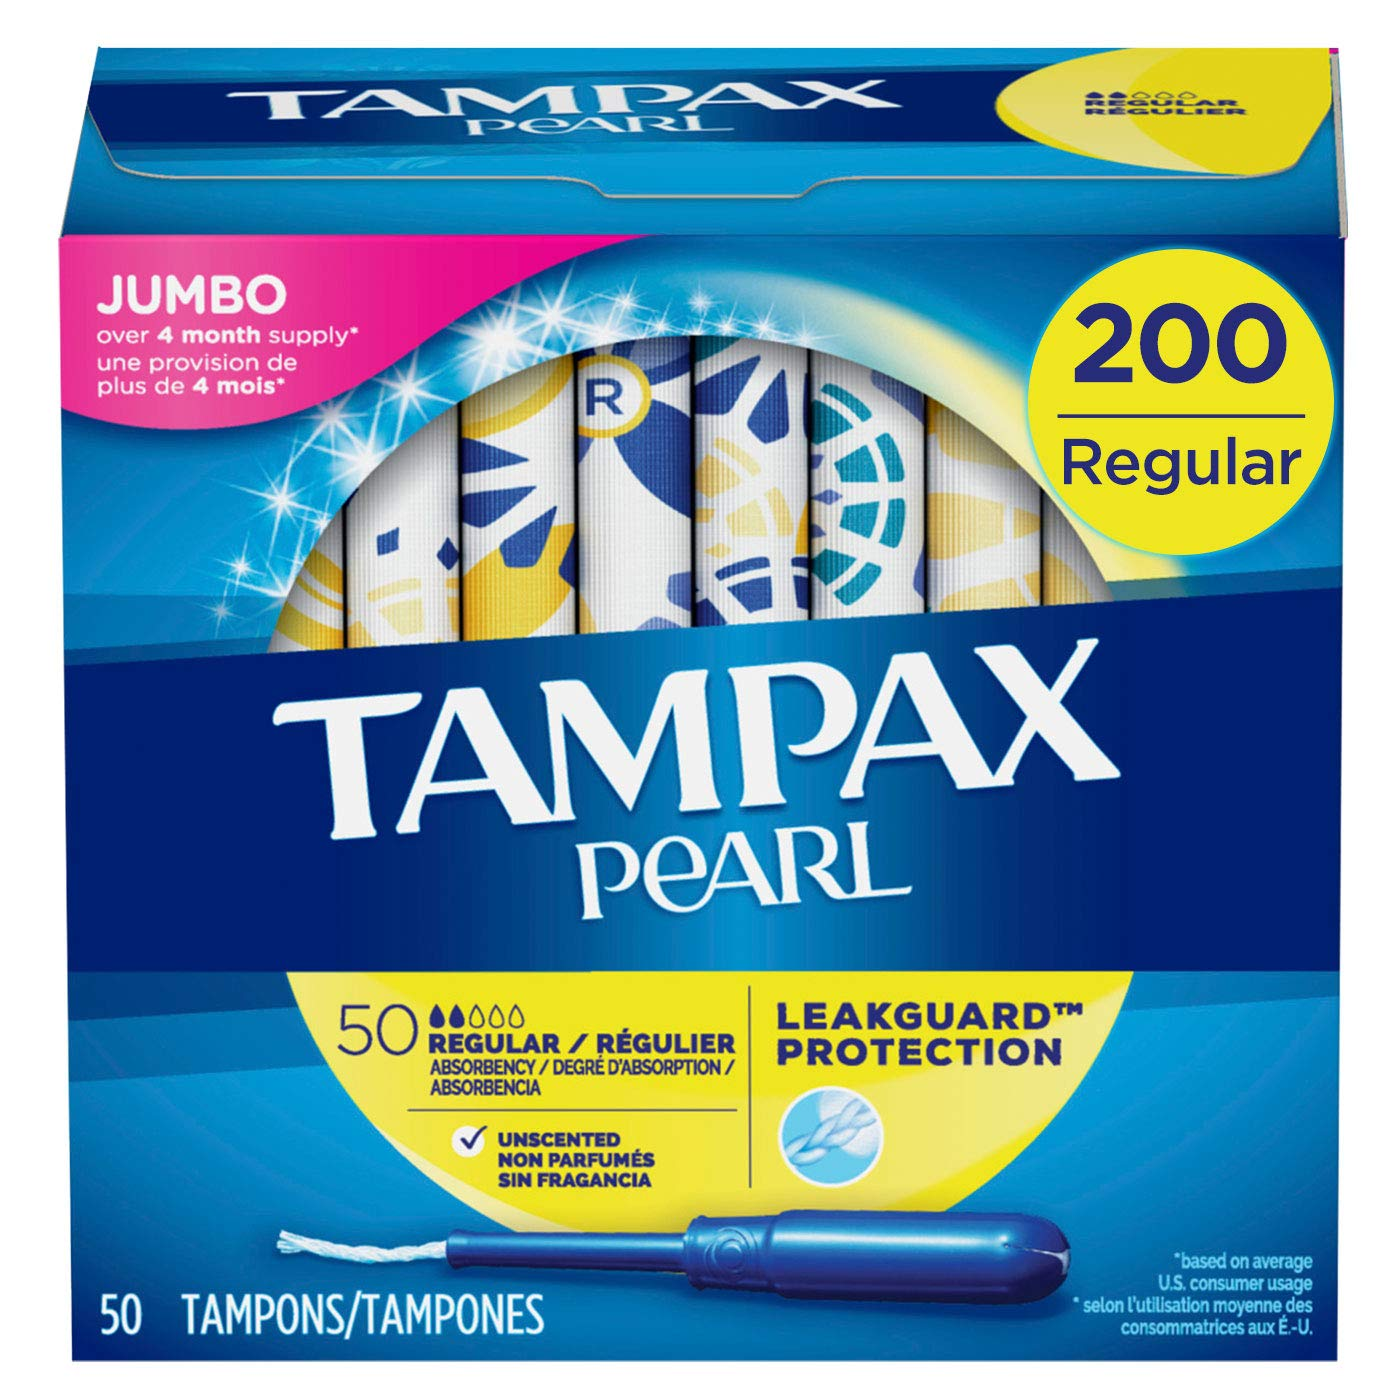 Tampax Pearl Tampons with Plastic Applicator, Regular Absorbency, Unscented, 50 Count-Pack of 4 (200 Count Total) ( packaging may vary) by Tampax